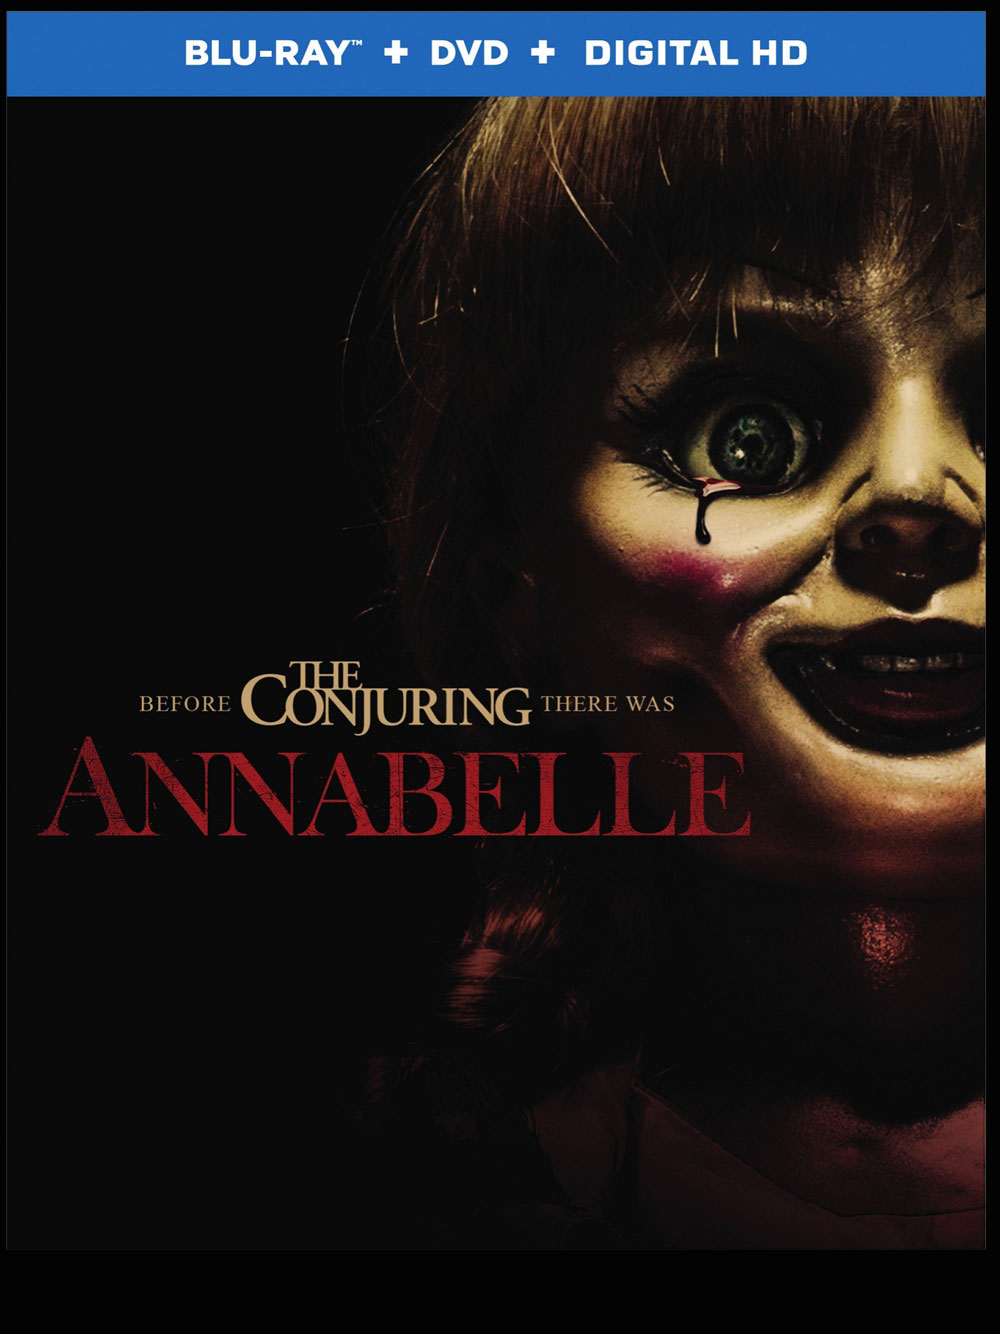 annabelle blu ray dvd release date and cover art hell. Black Bedroom Furniture Sets. Home Design Ideas